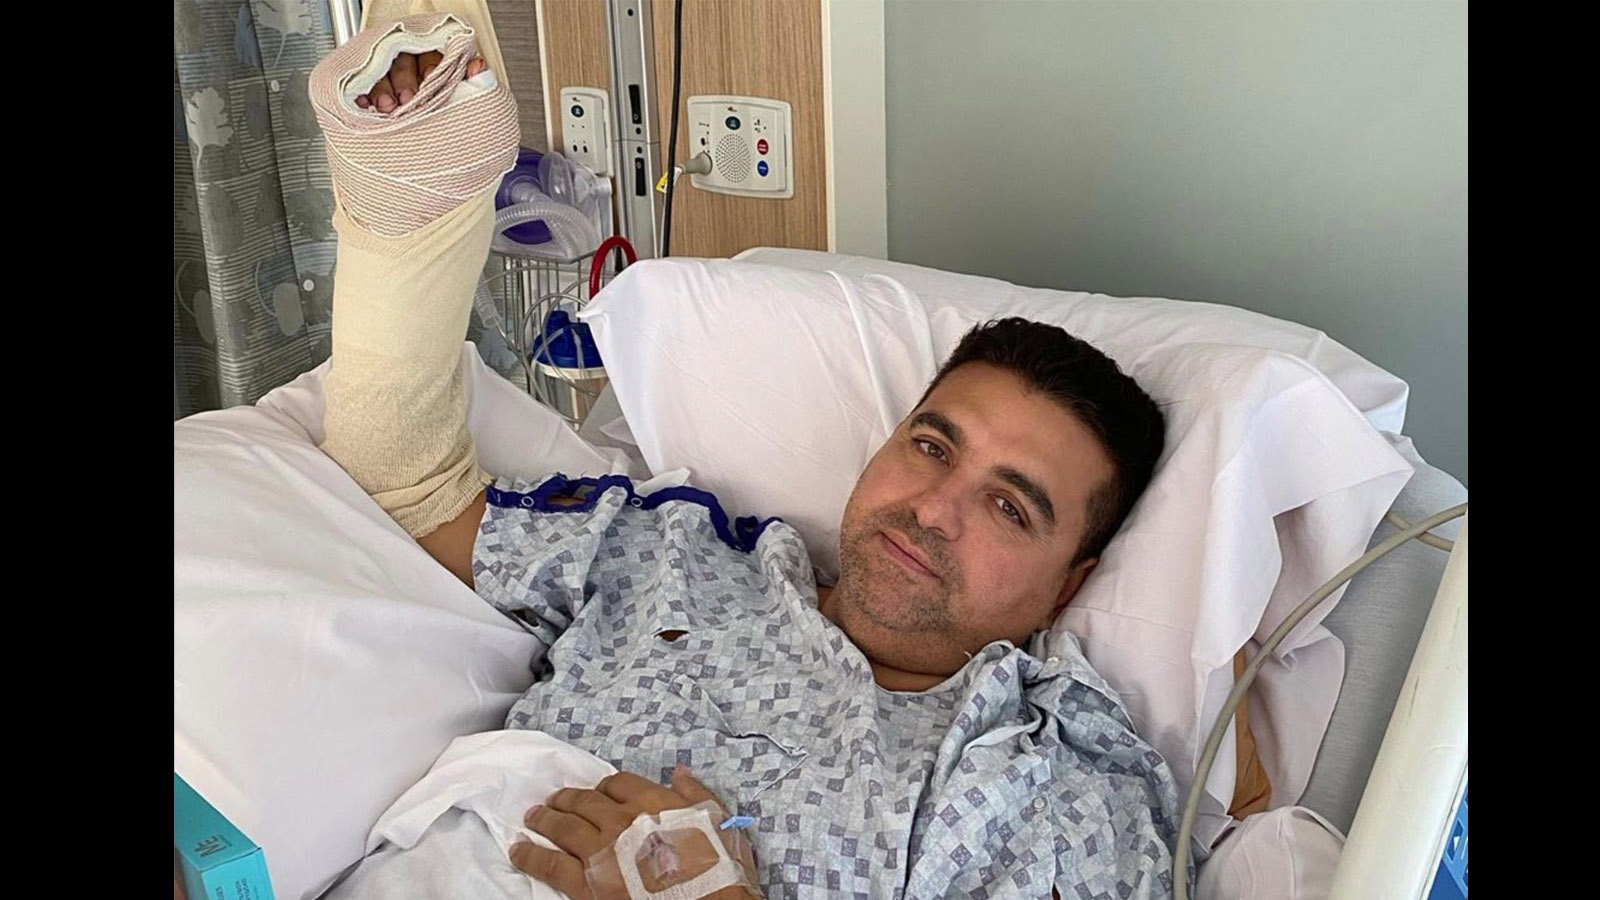 'Cake Boss' star Buddy Valastro is at home recovering from multiple surgeries following a gruesome bowling accident that left his left hand impaled.